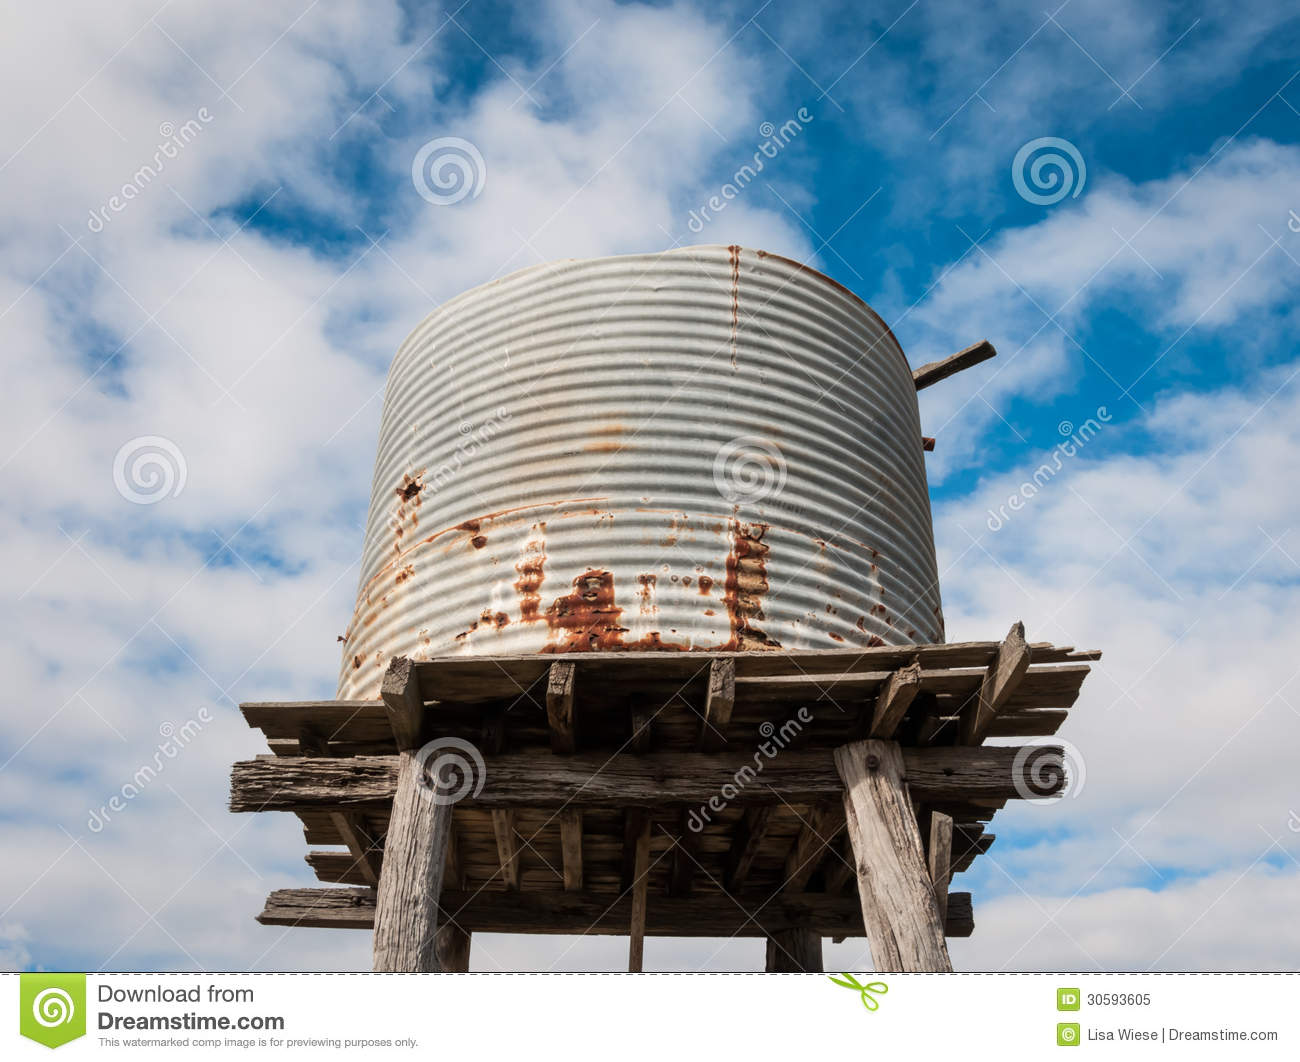 Elevated old water tank stock image  Image of ruins, metal